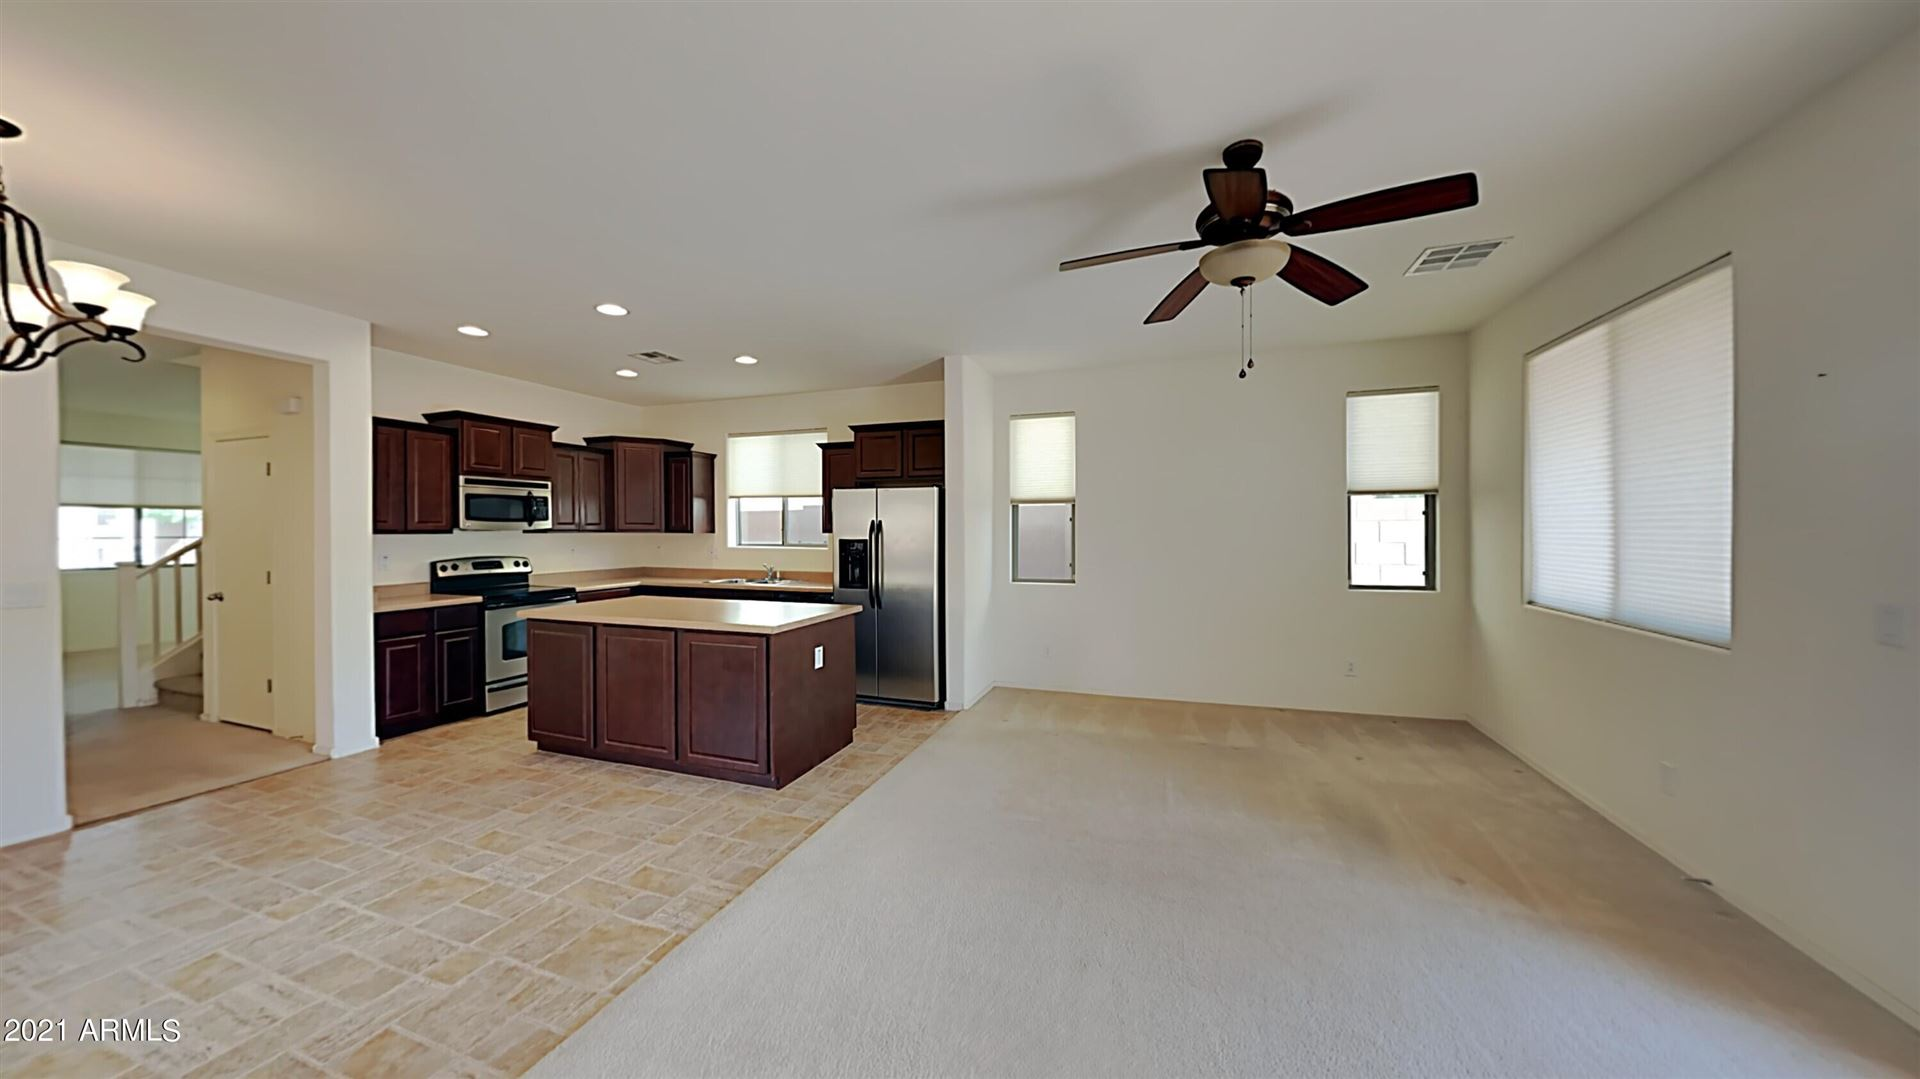 Photo of 4107 W VALLEY VIEW Drive, Laveen, AZ 85339 (MLS # 6304667)